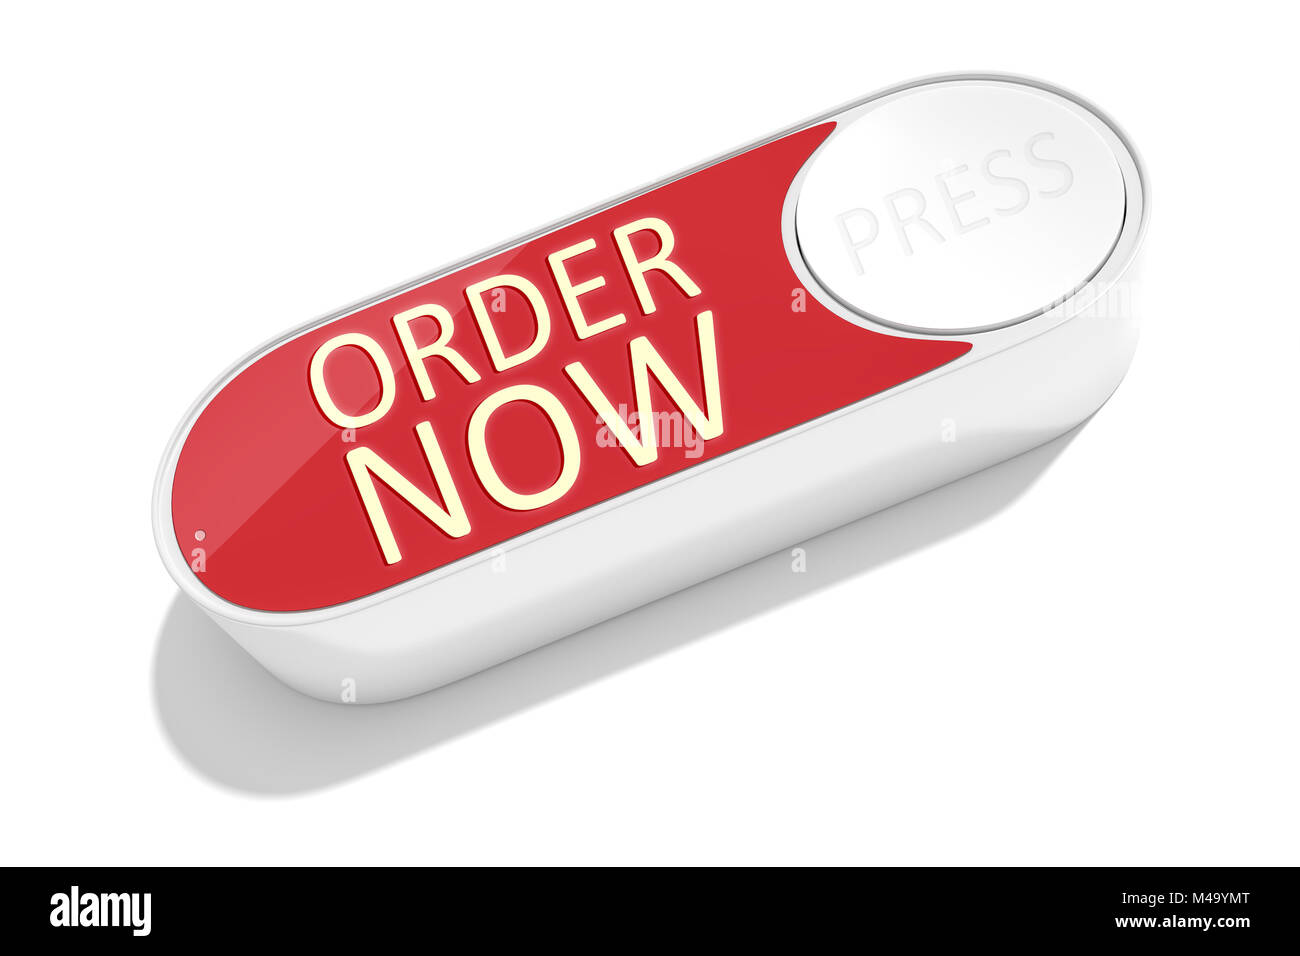 a dash button to order things in the internet - Stock Image